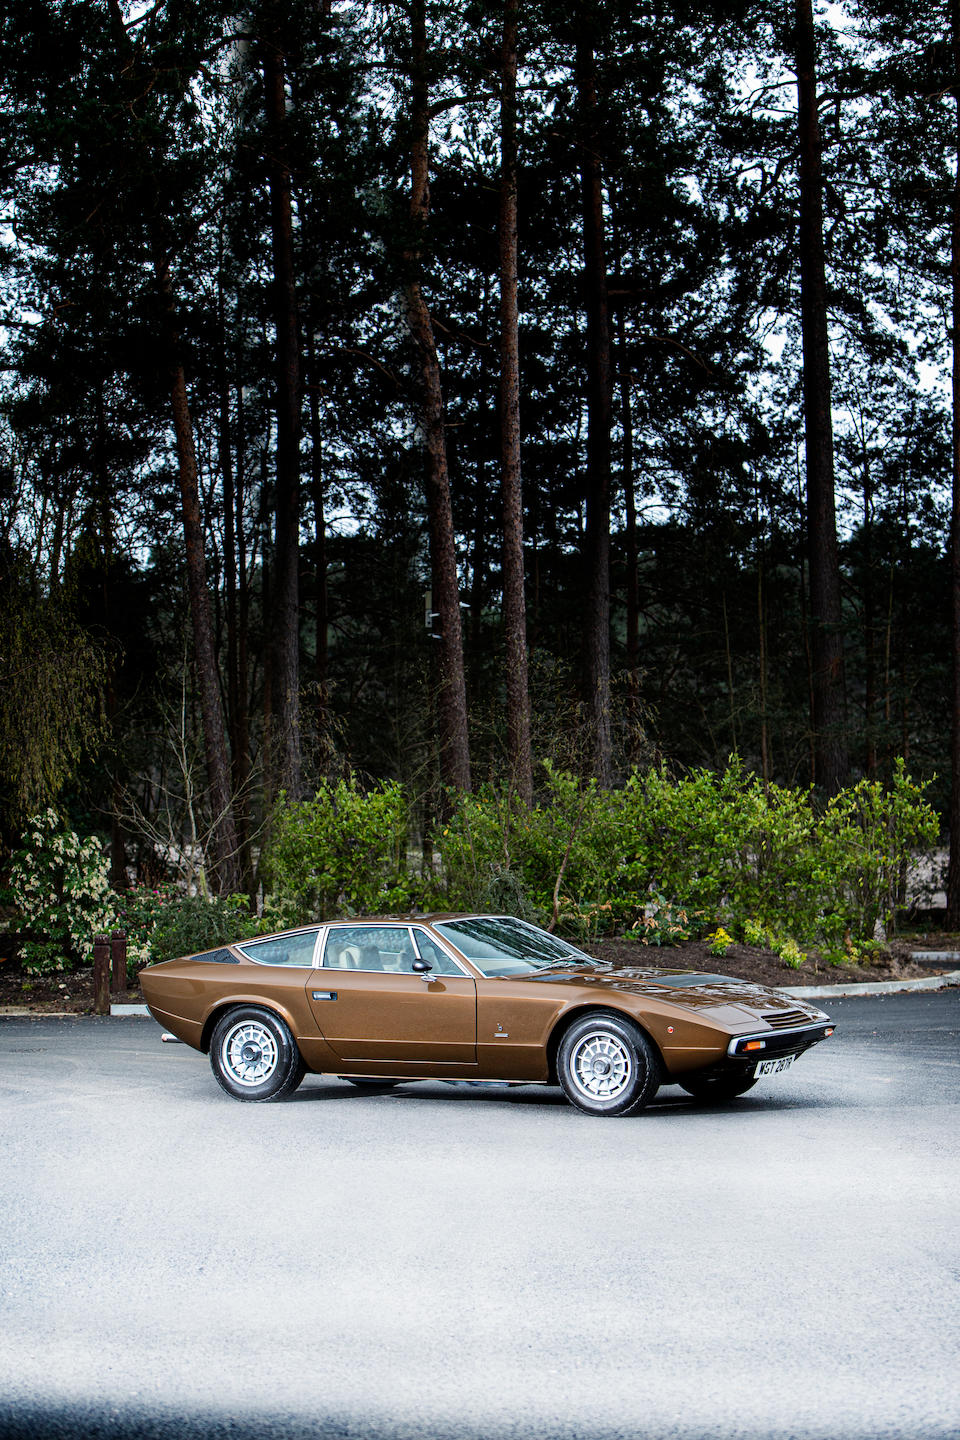 Restored to concours condition,1976 Maserati Khamsin Coupé  Chassis no. AM120-341